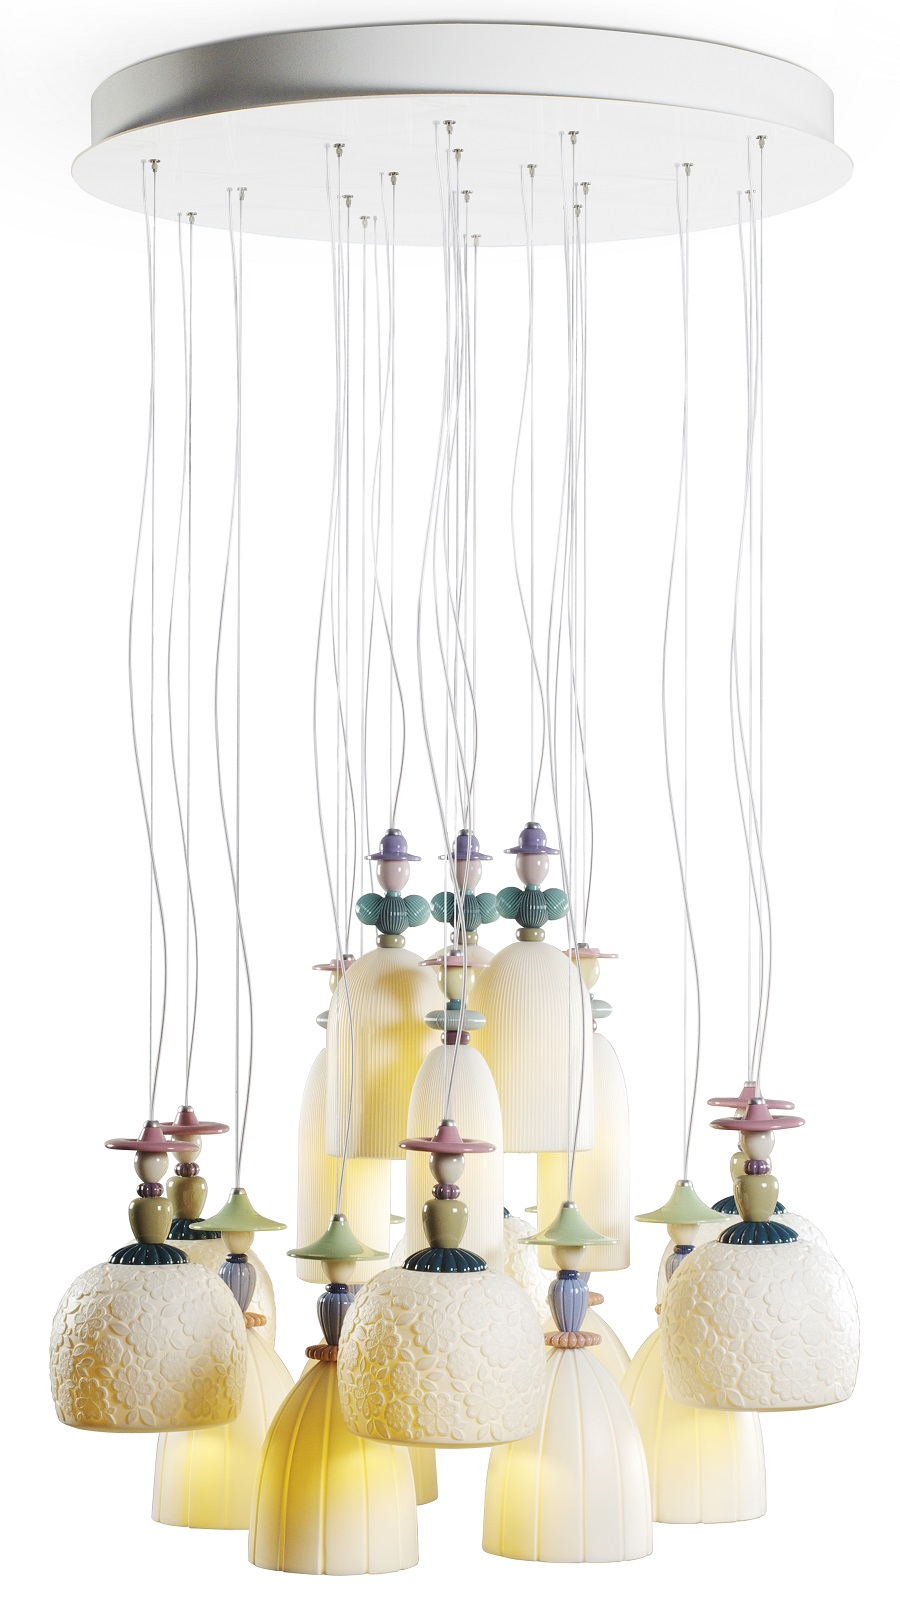 Lladro Mademoiselle lighting